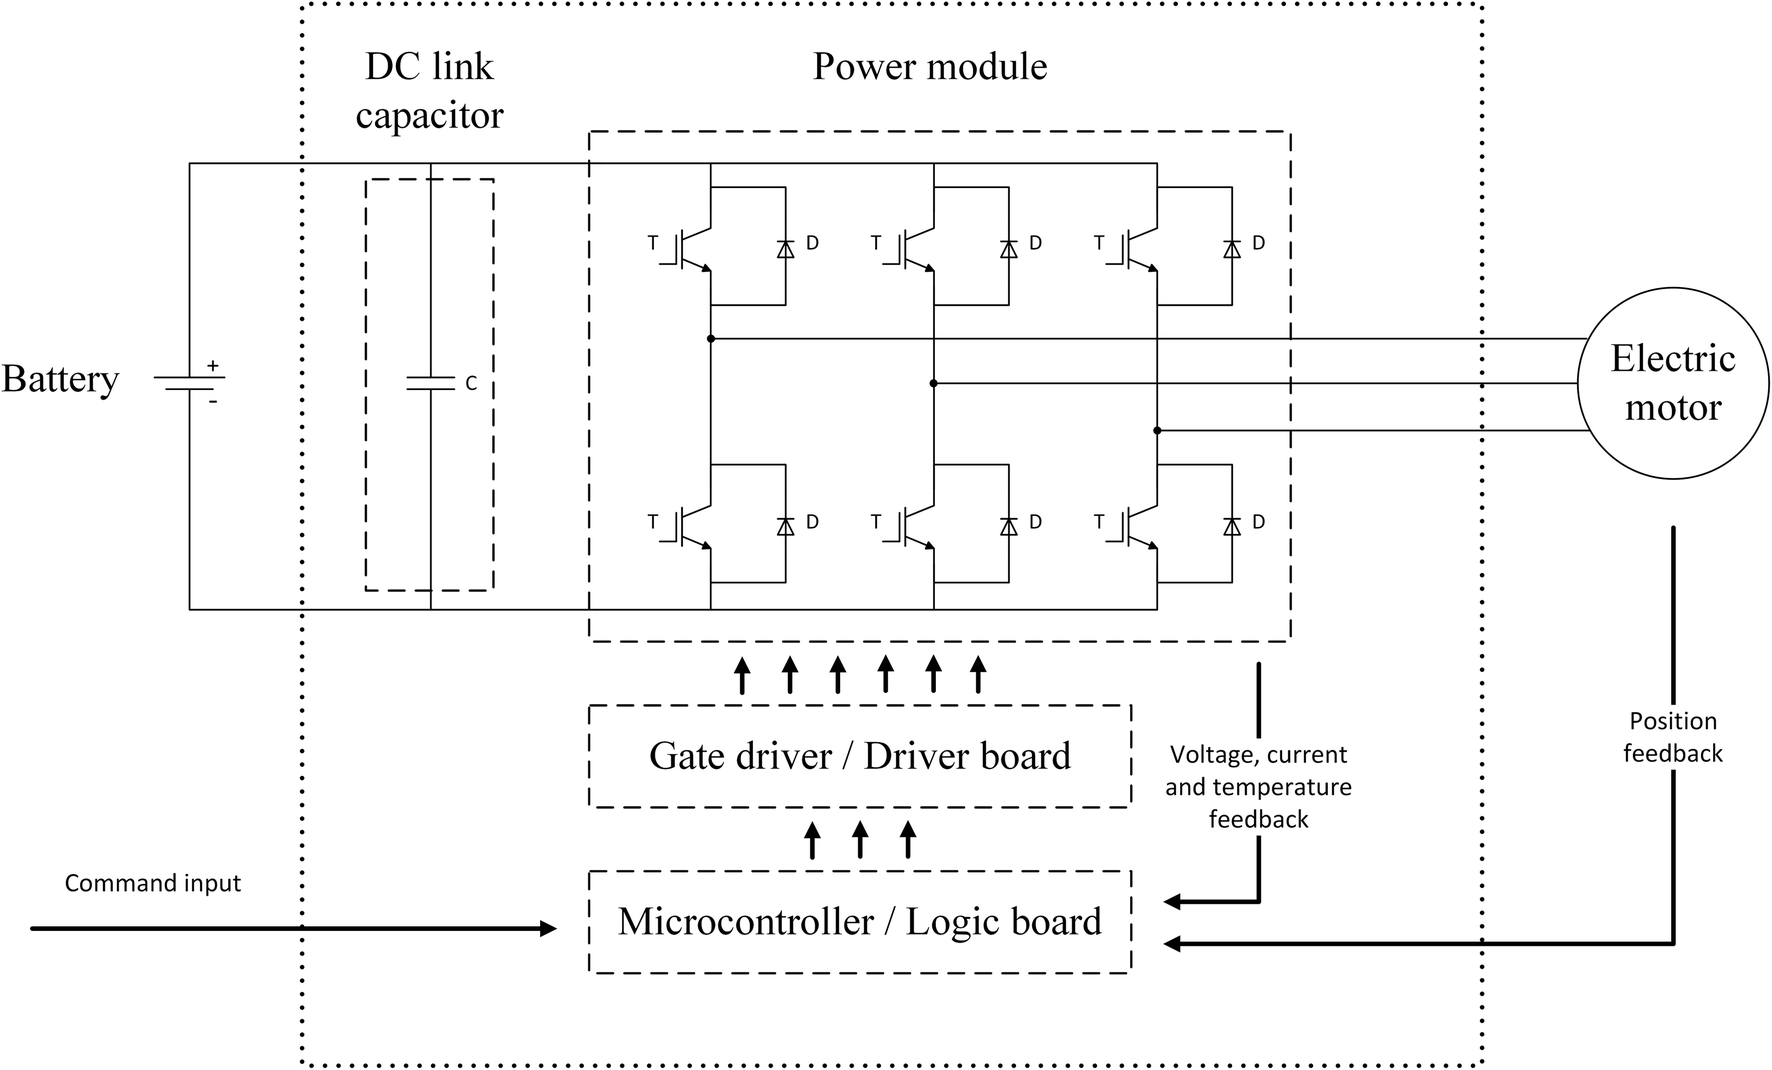 A Scalable Life Cycle Inventory Of An Automotive Power Electronic Electrical 2011 Provides Circuit Design And Analysis Tools Fig 3 Schematic